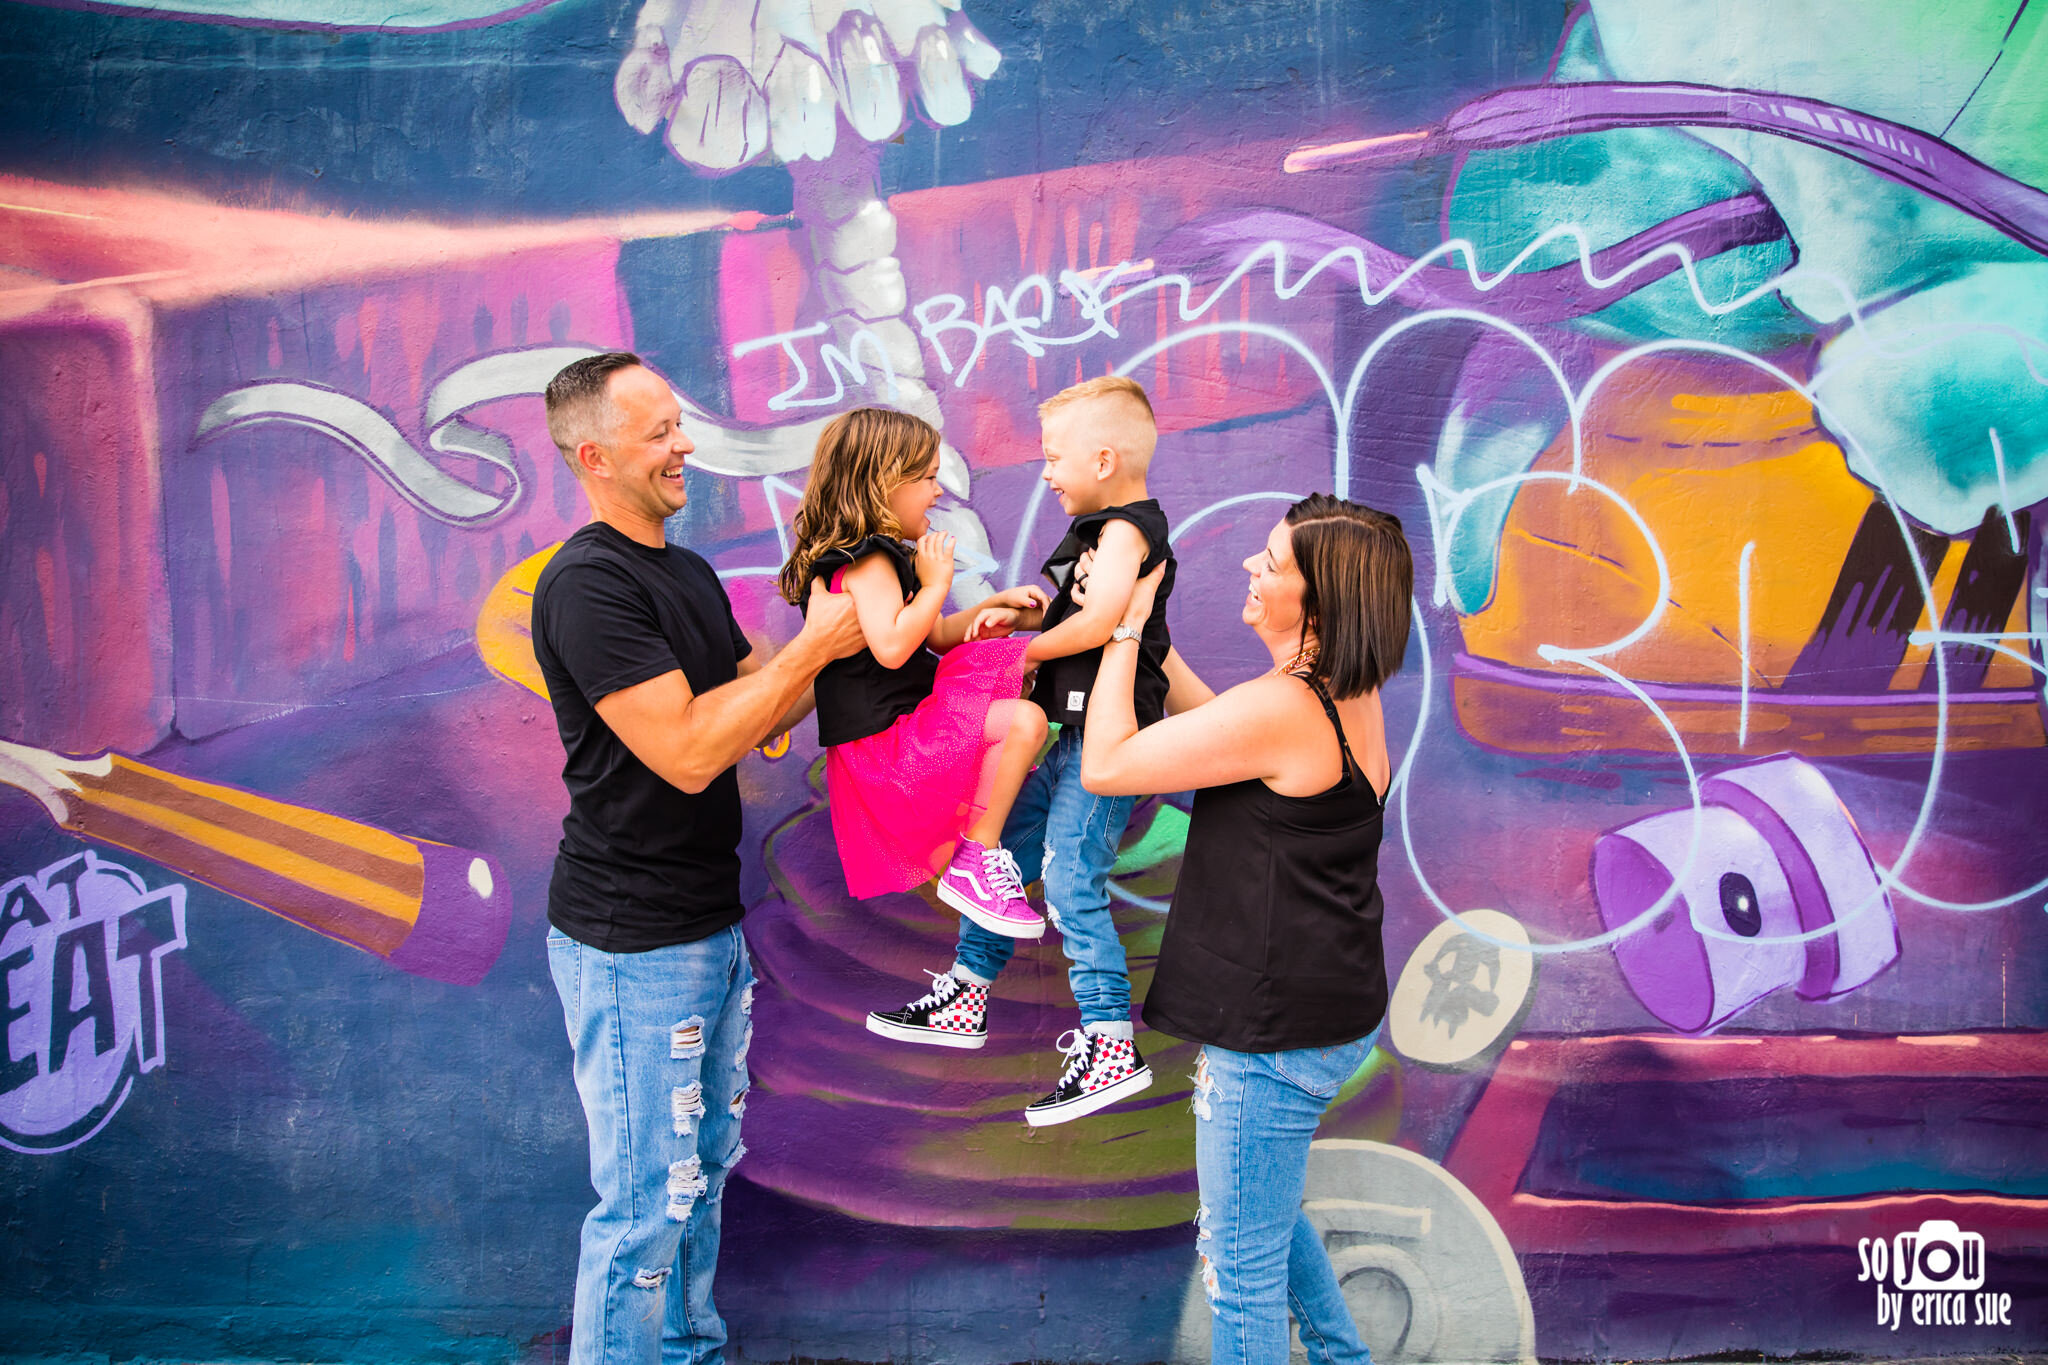 so-you-by-erica-wynwood-walls-lifestyle-family-photographer-session-1802.JPG